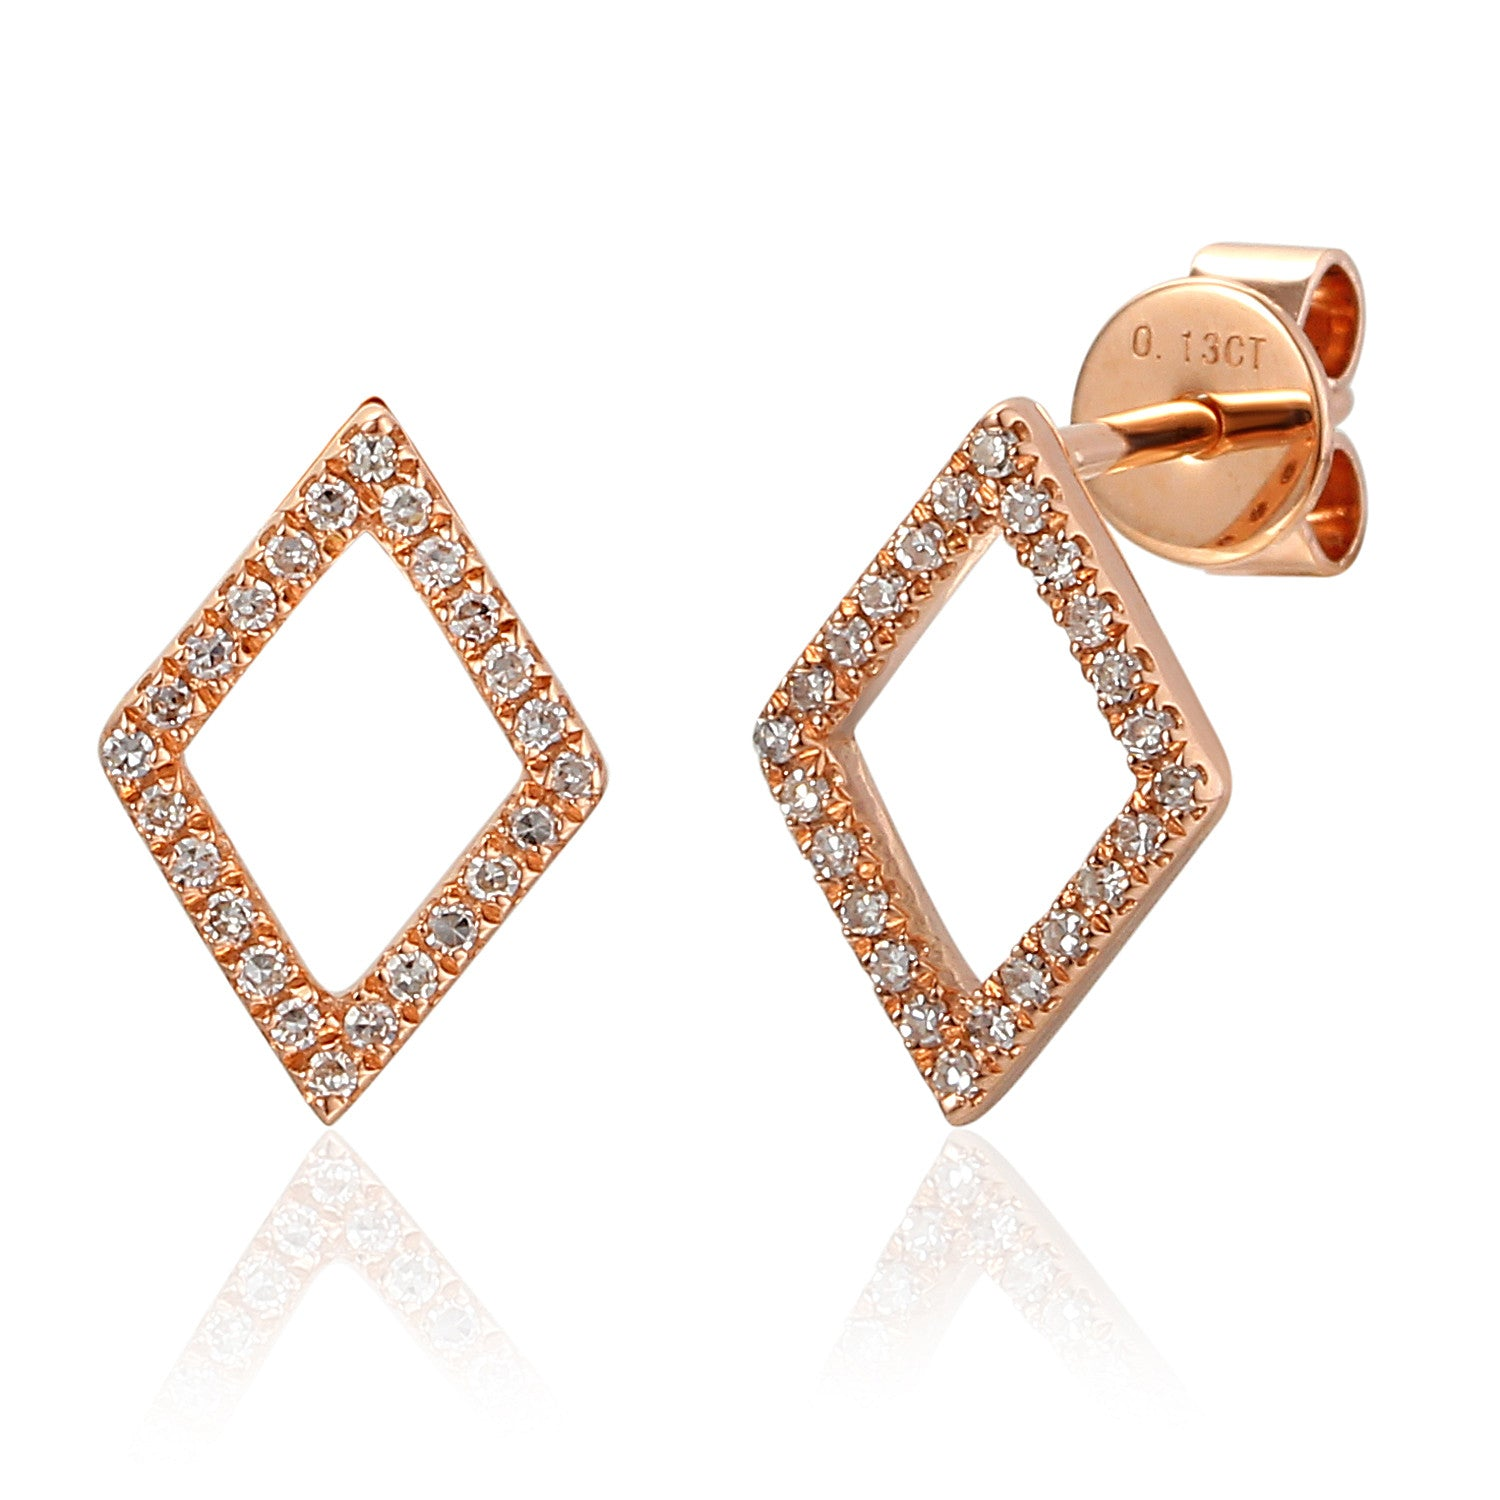 rhodium of diamond gold for shaped earrings plated everyday minimalist stud a pair tiny pink use pin